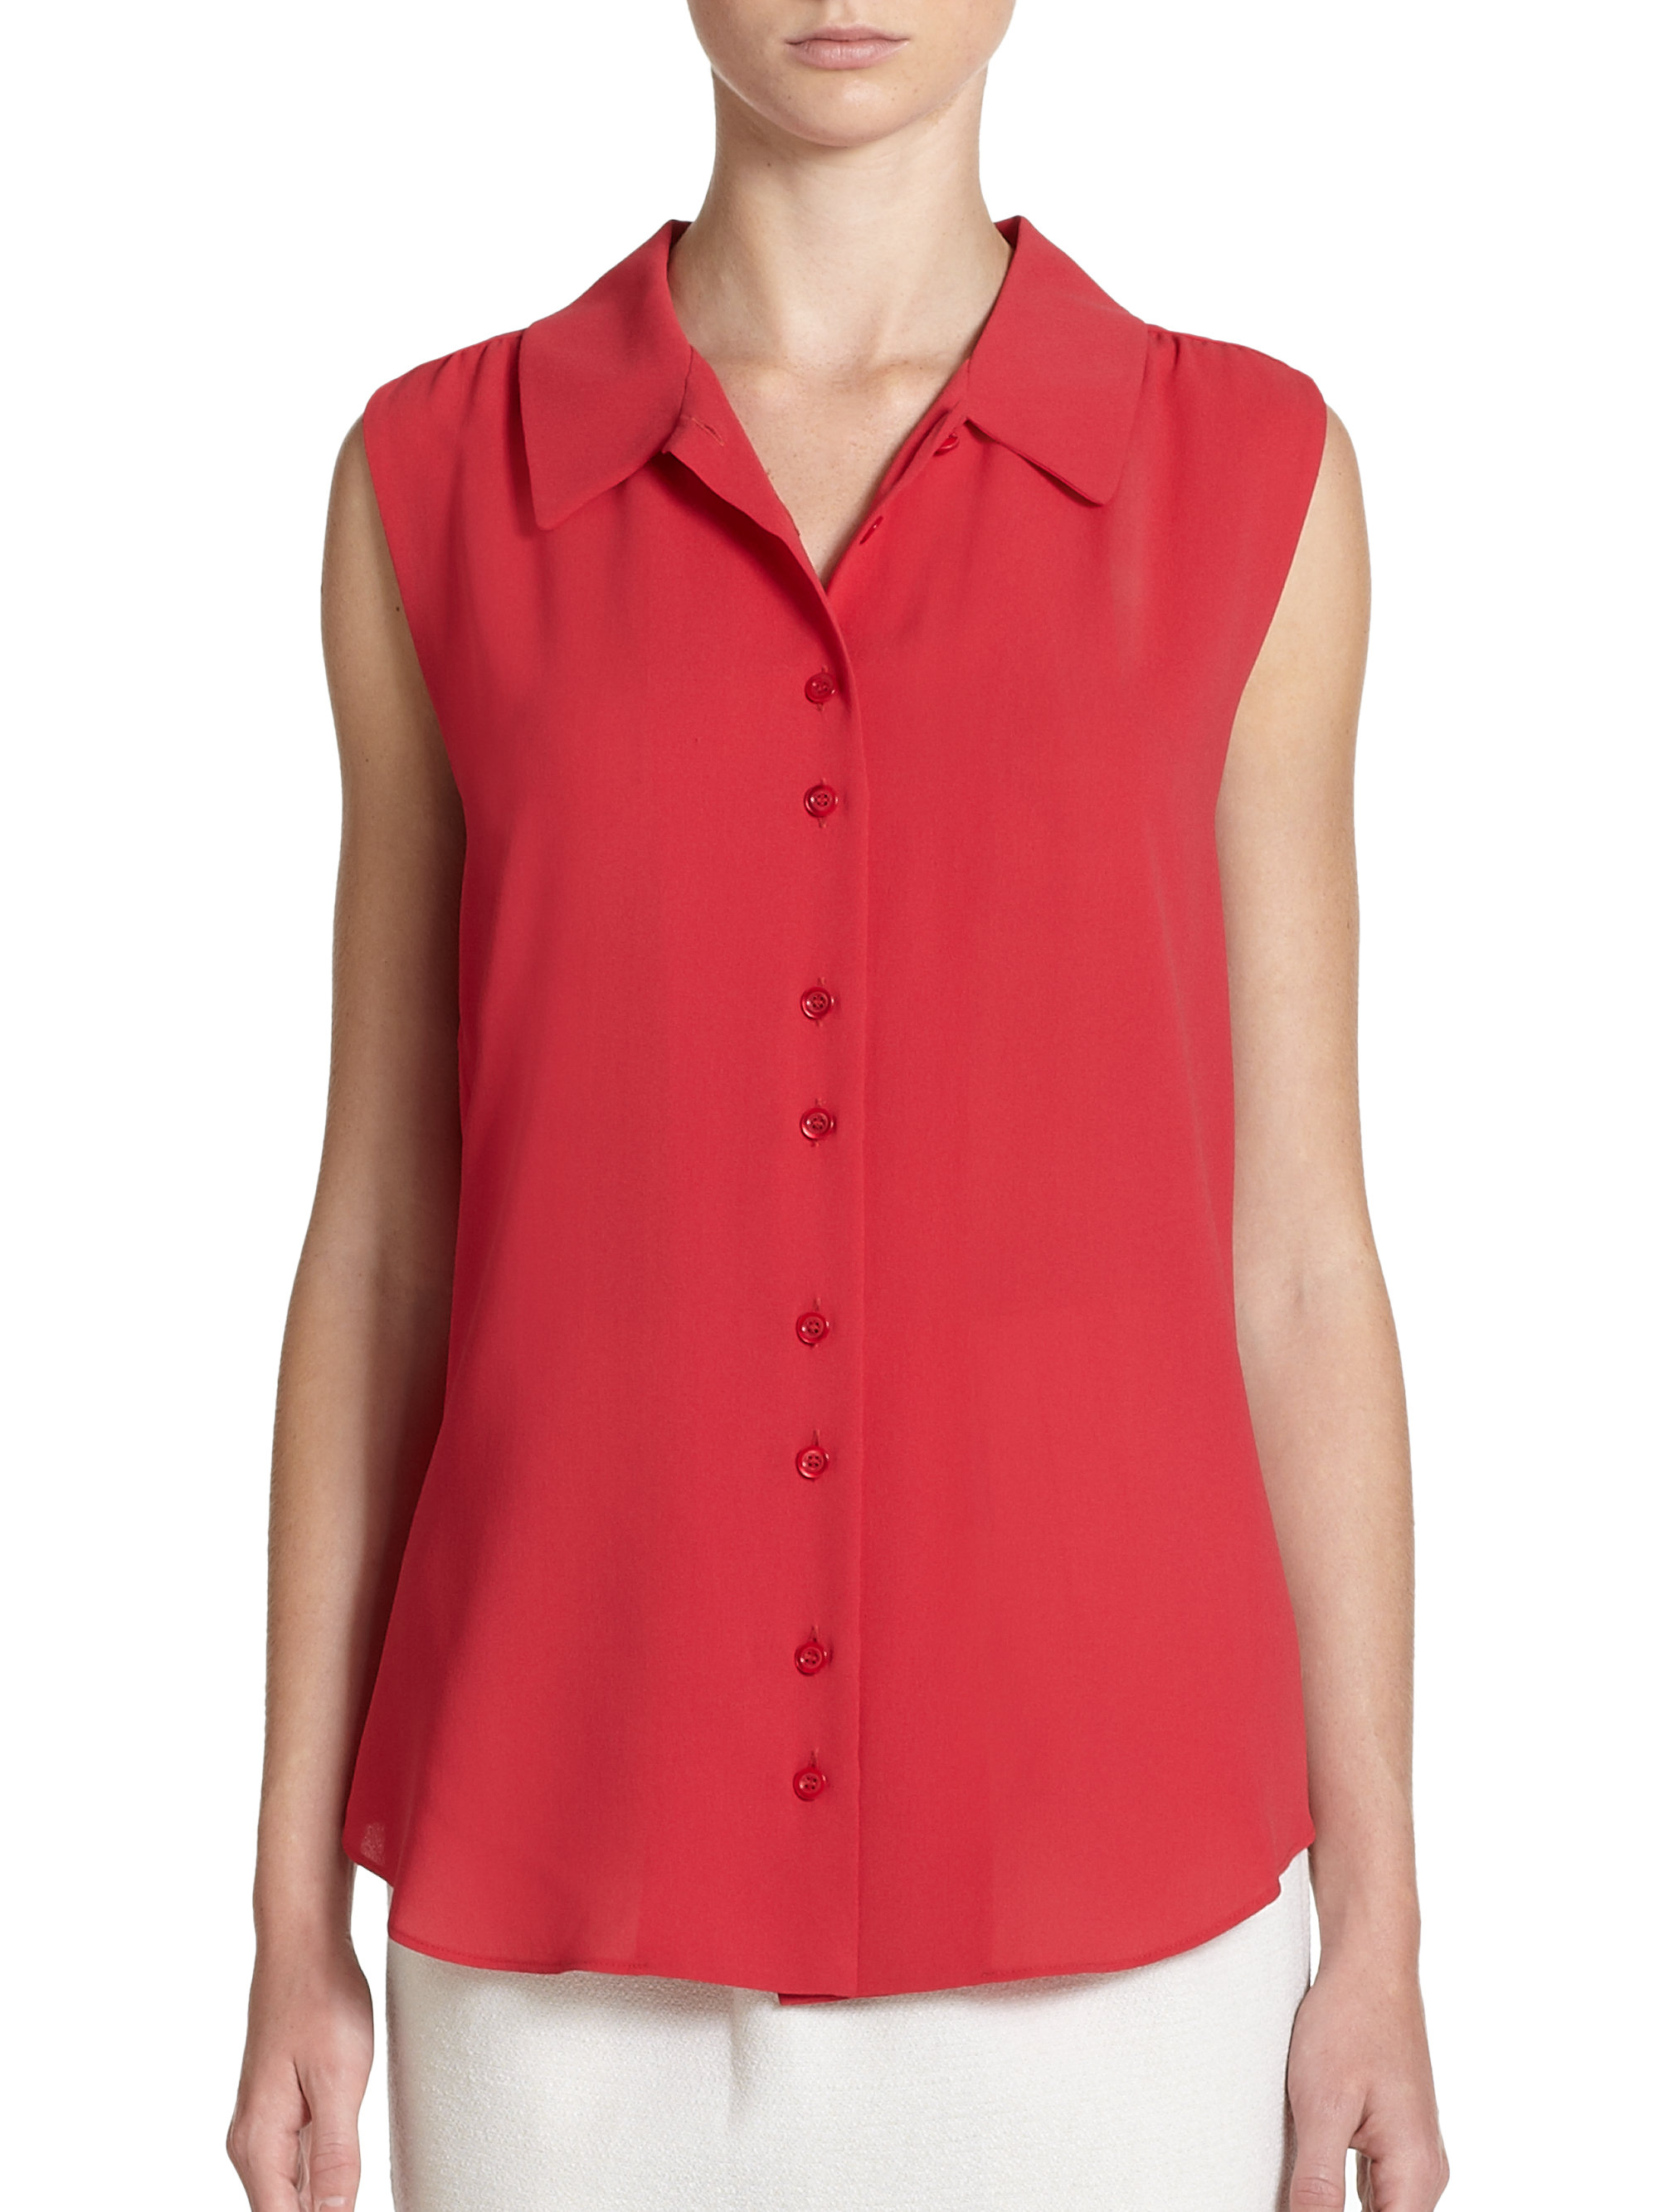 Womens Red Tops And Blouses